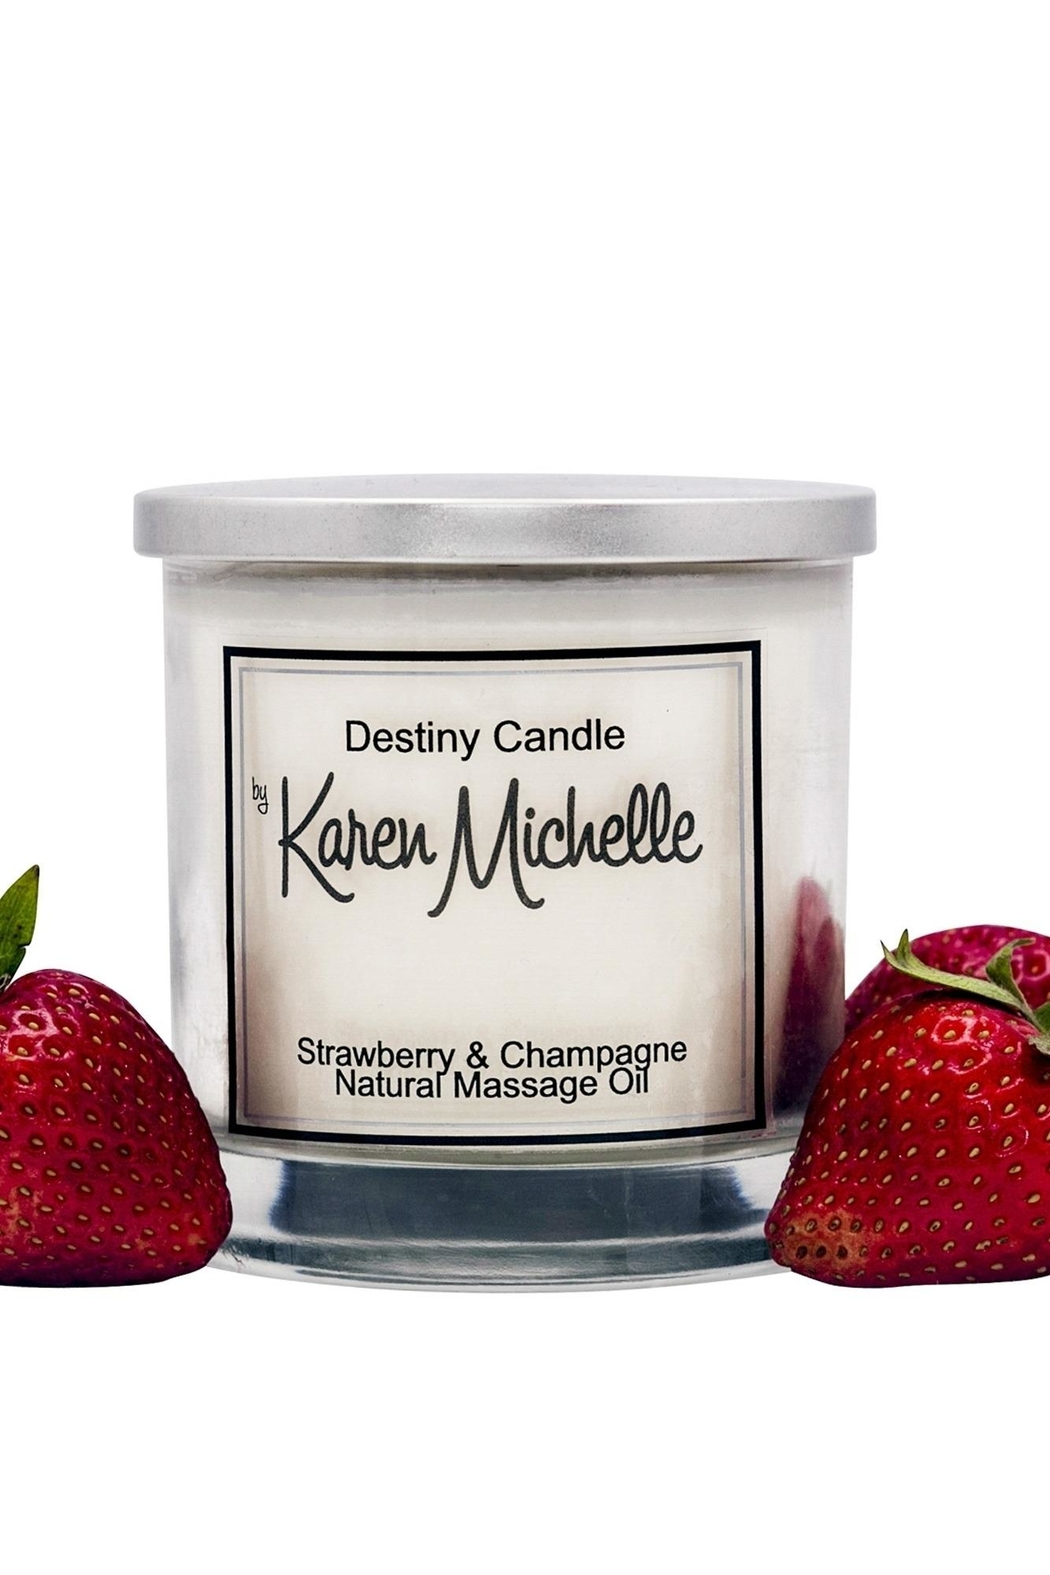 Destiny Candle by Karen Michelle Strawberry Champagne - Main Image